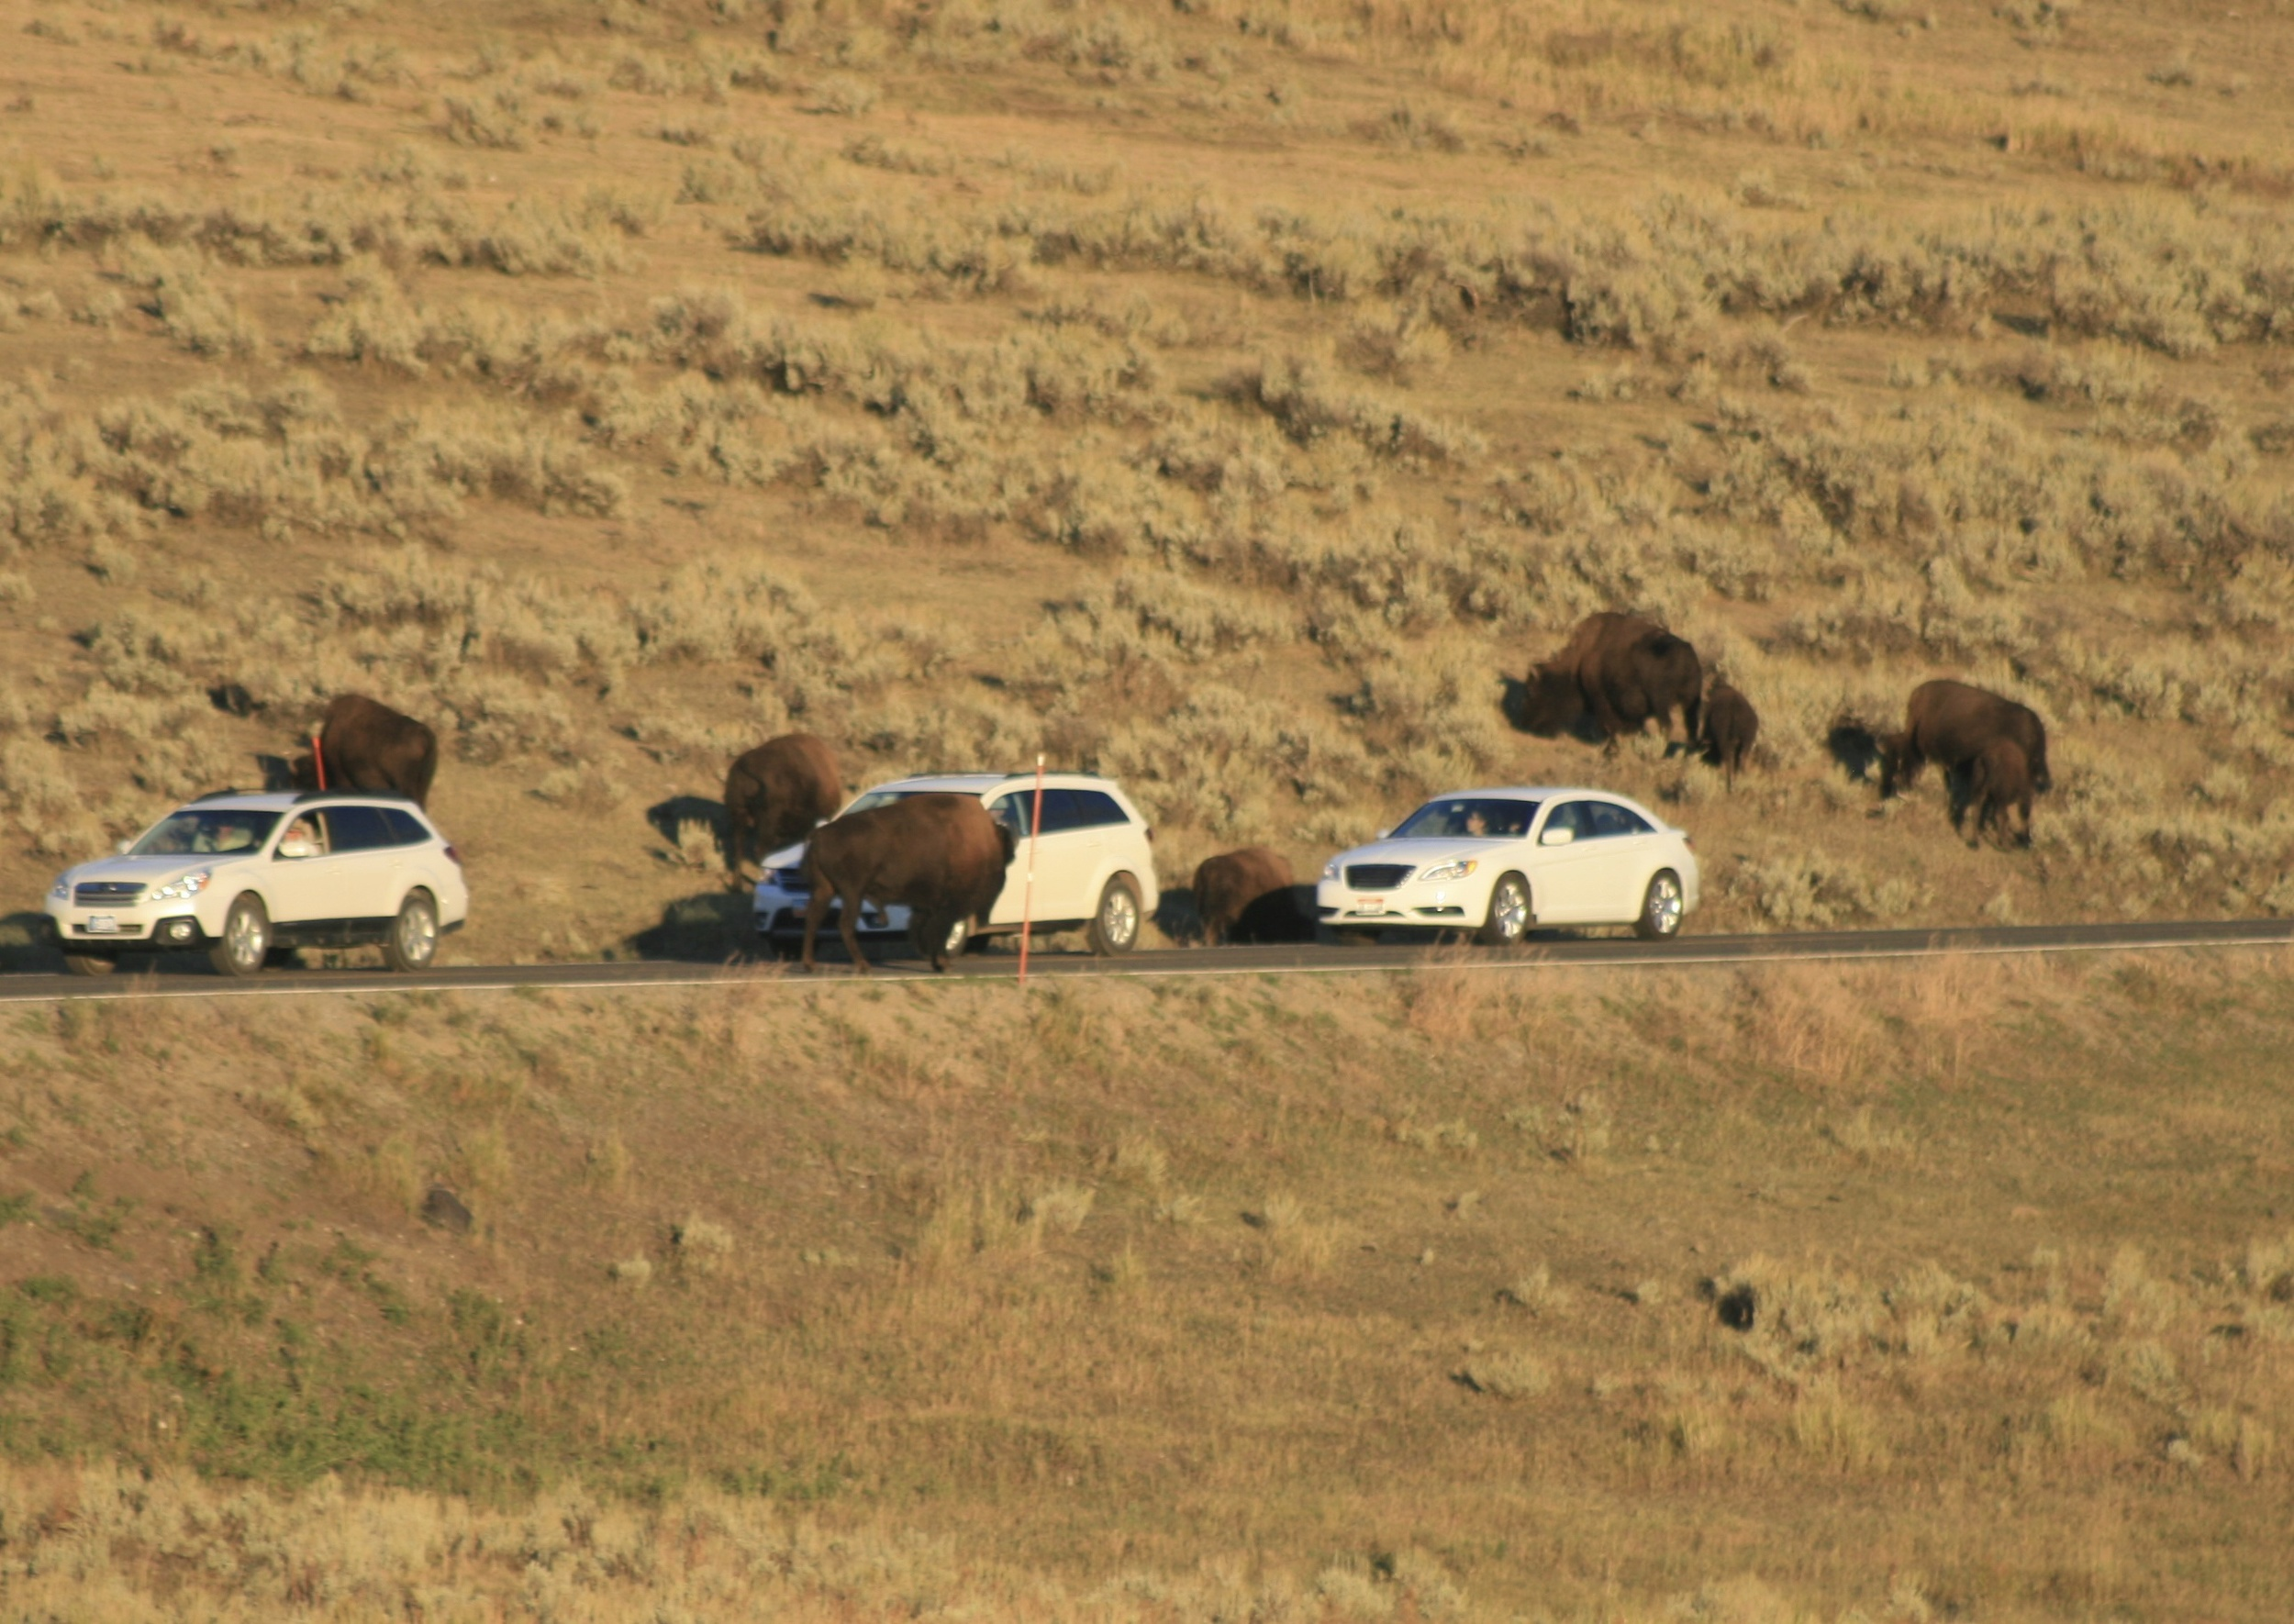 Bison each taking their turn annoying cars by standing in the road and pretending they don't get it in the Lamar Valley.